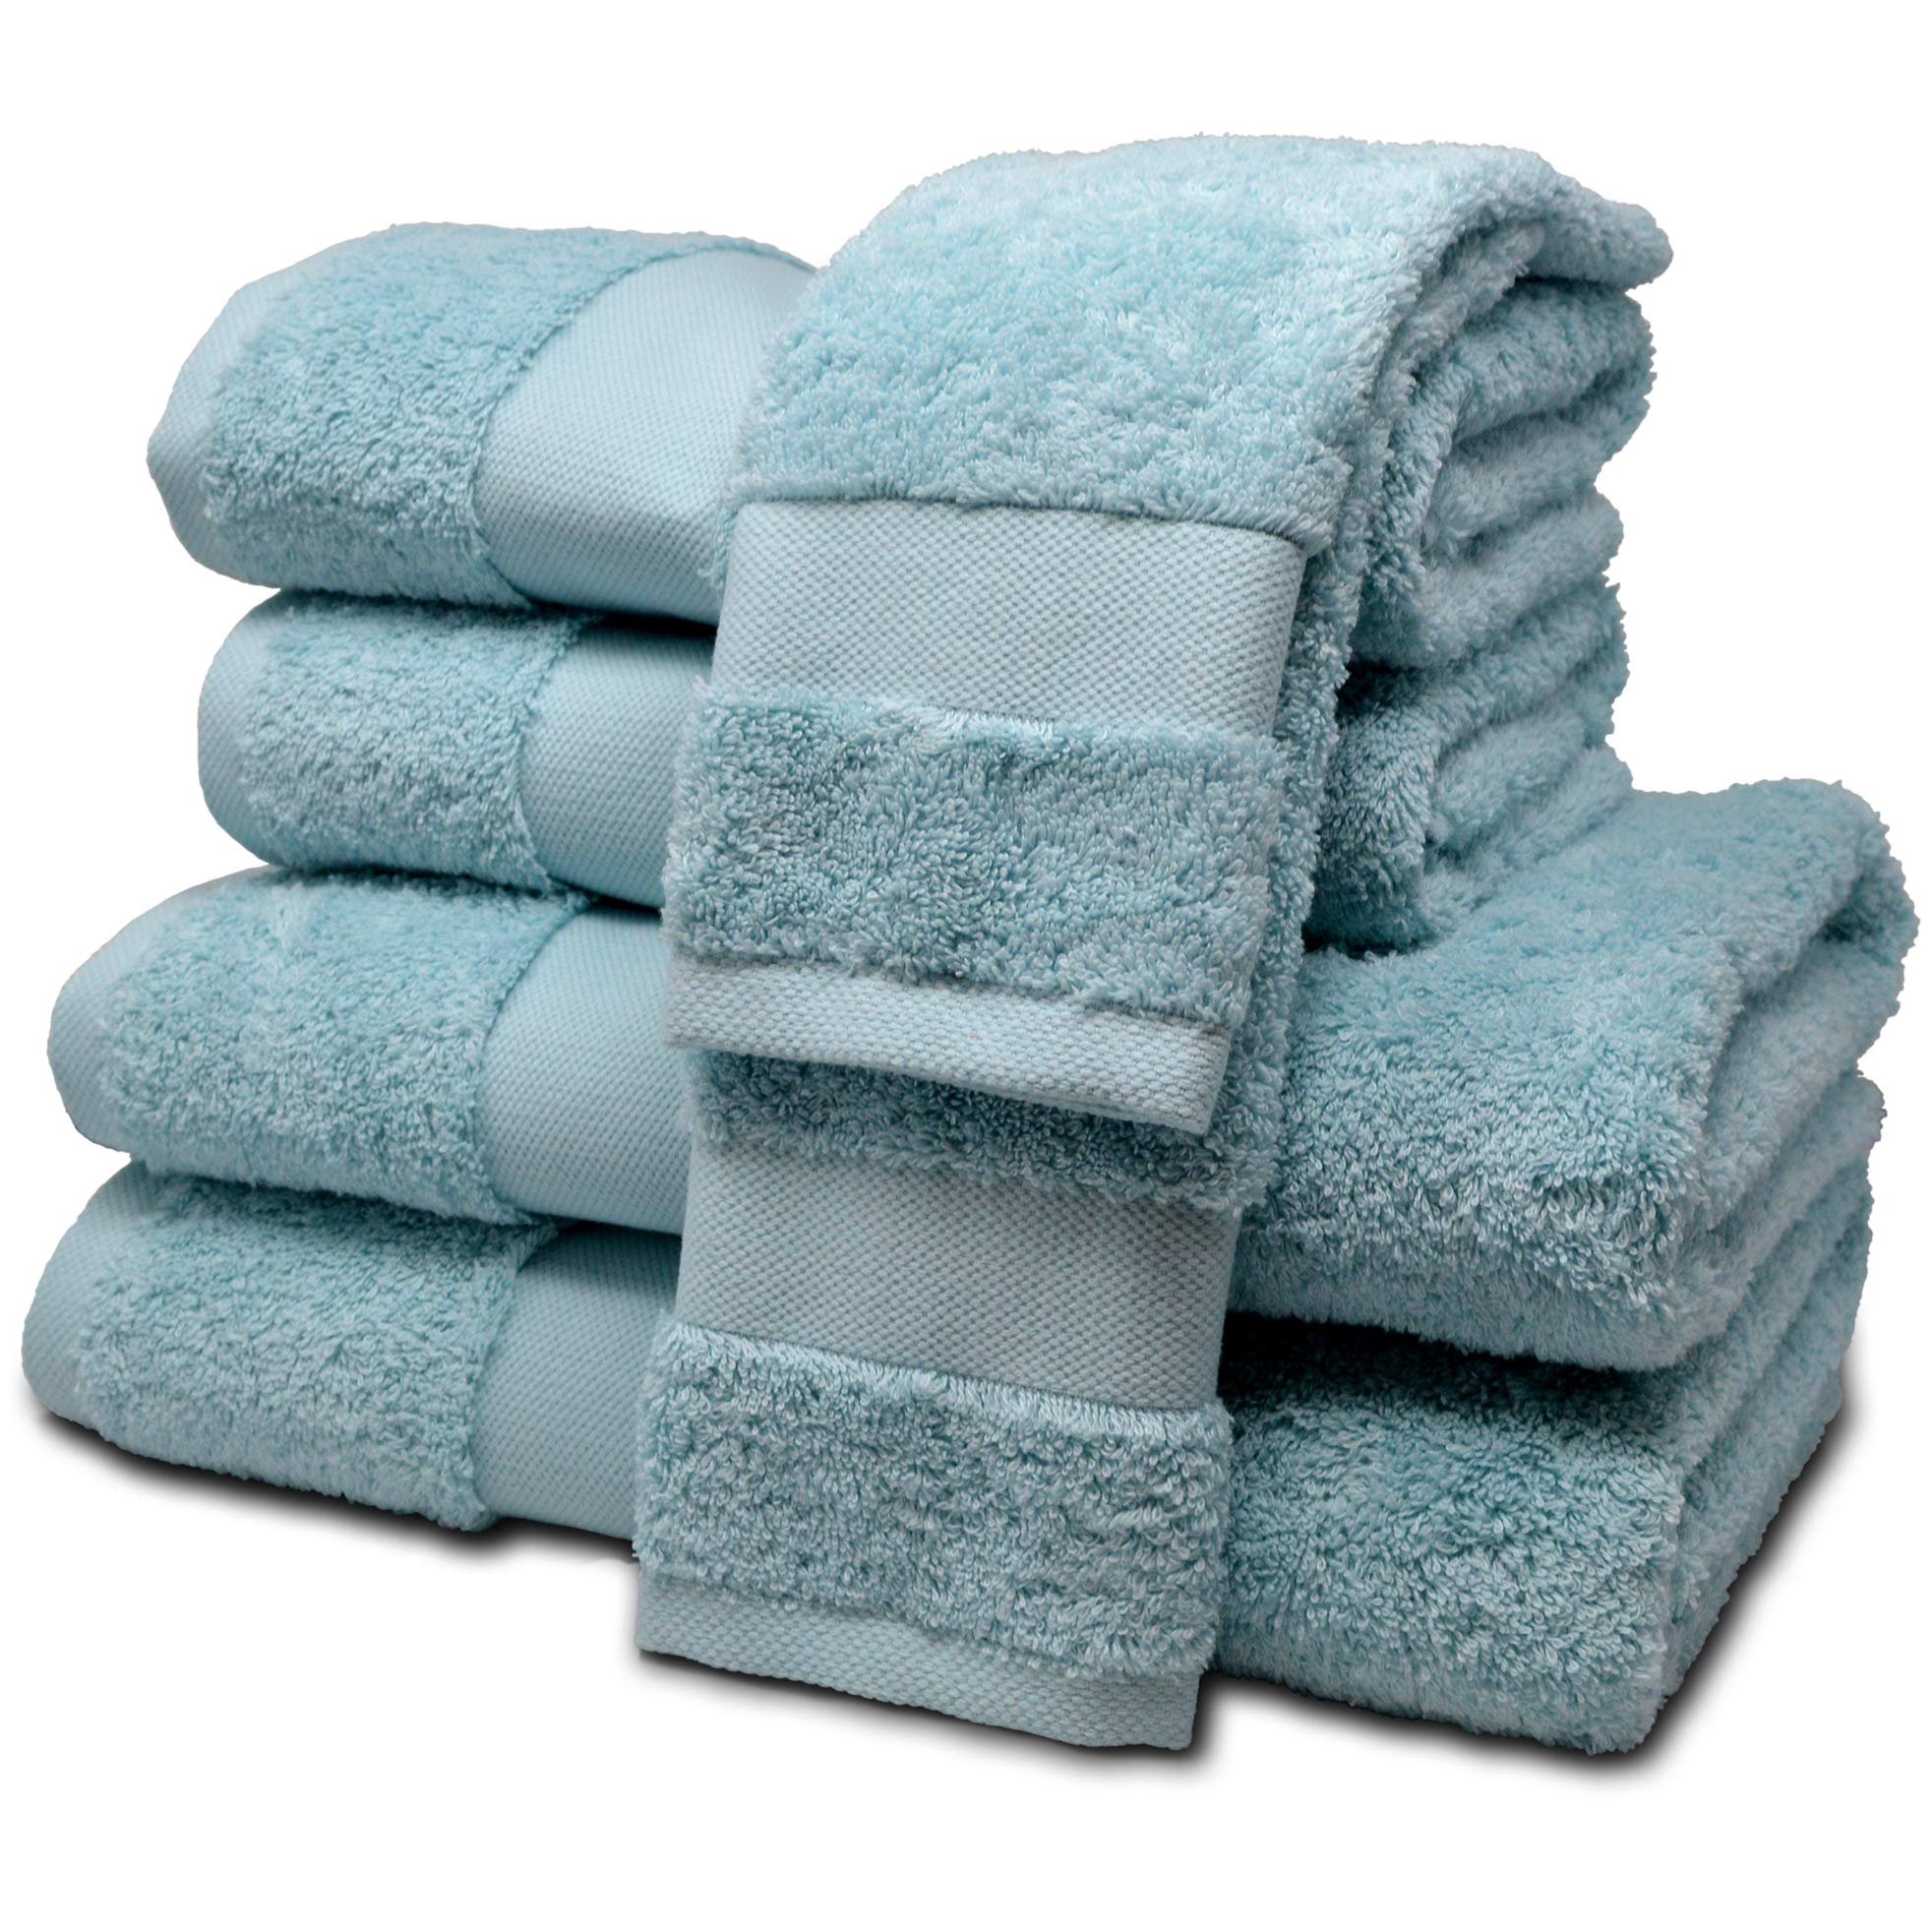 ELK ROSÉ 6 Piece Extremely Soft & Fluffy 100% Egyptian ''Giza'' Cotton Towel Set for Hotels, Spas & Home - 2 Oversized Bath Towels, 2 Hand Towels, 2 Washcloths (Aqua)